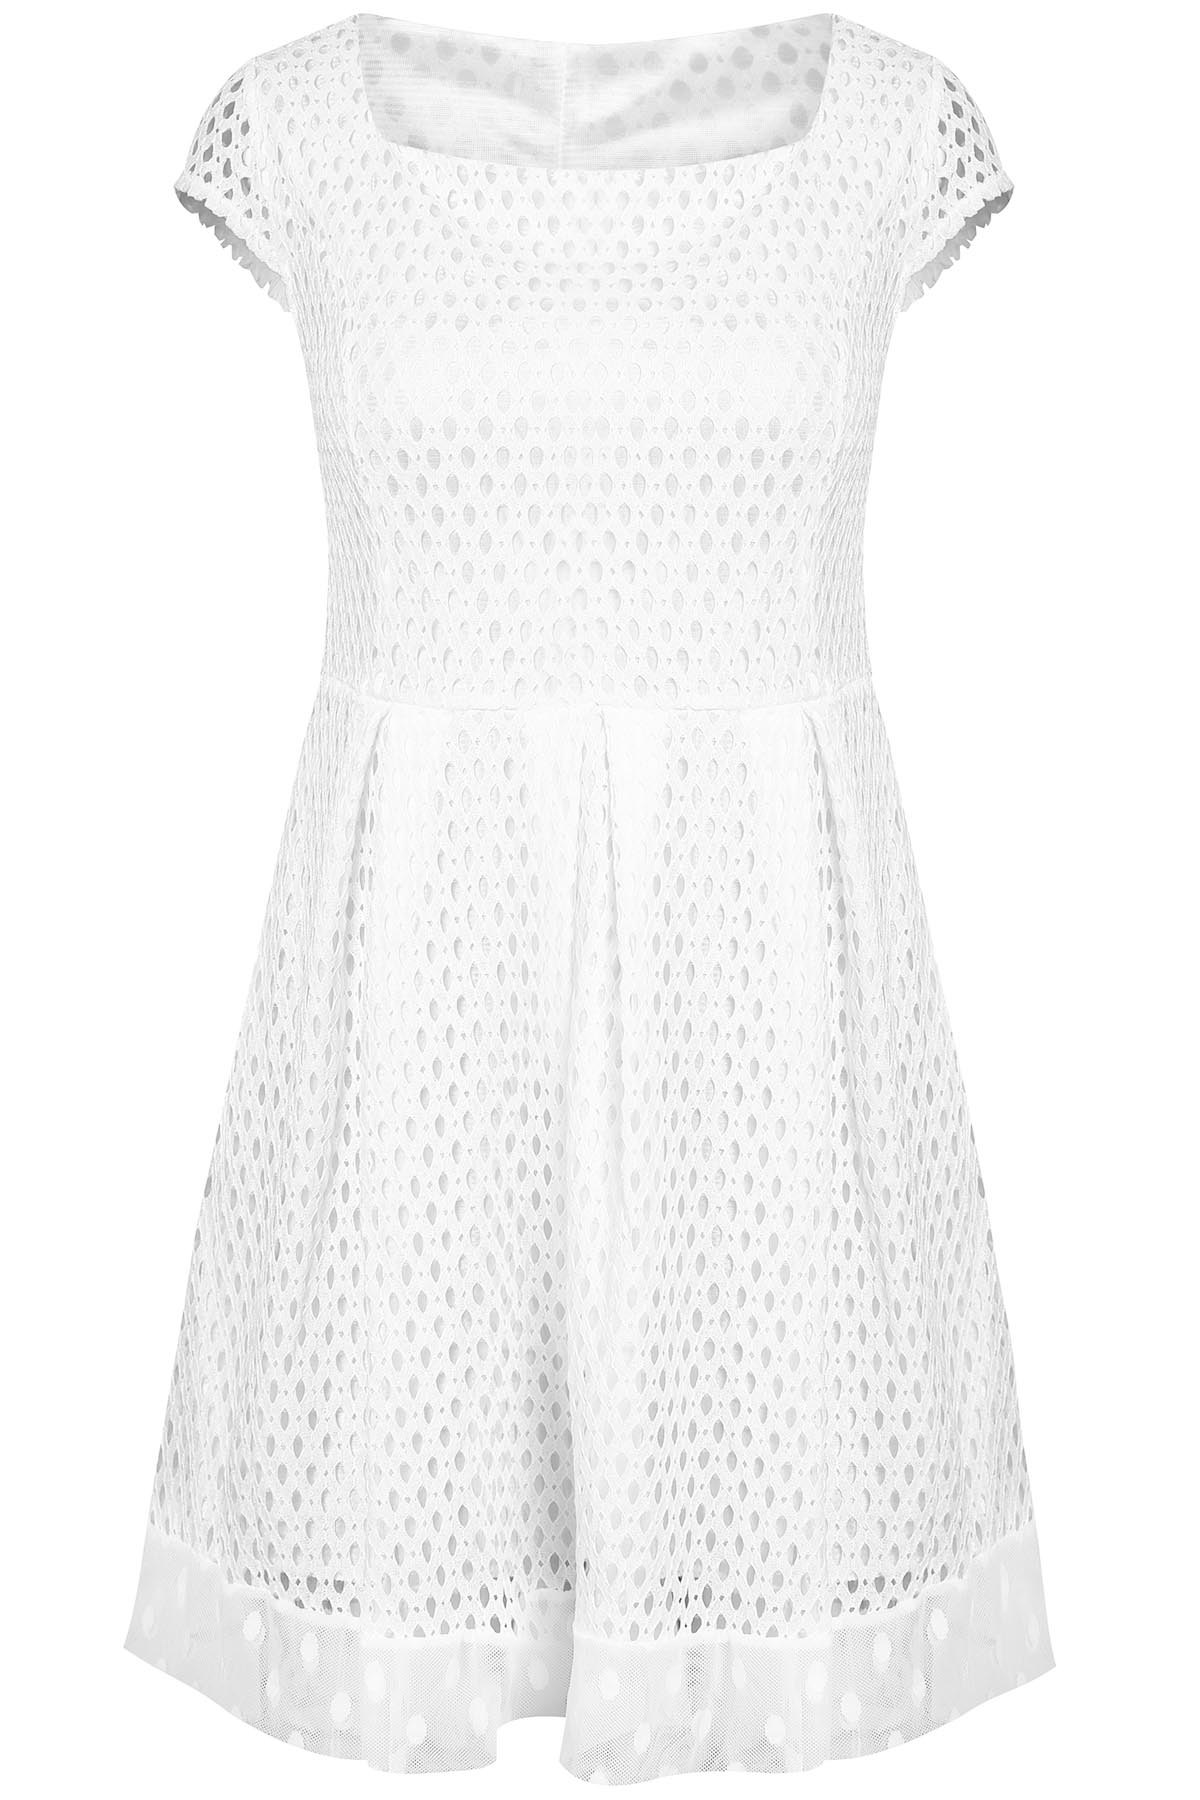 Short Sleeve Square Neck A-Line Dress For Women - WHITE L